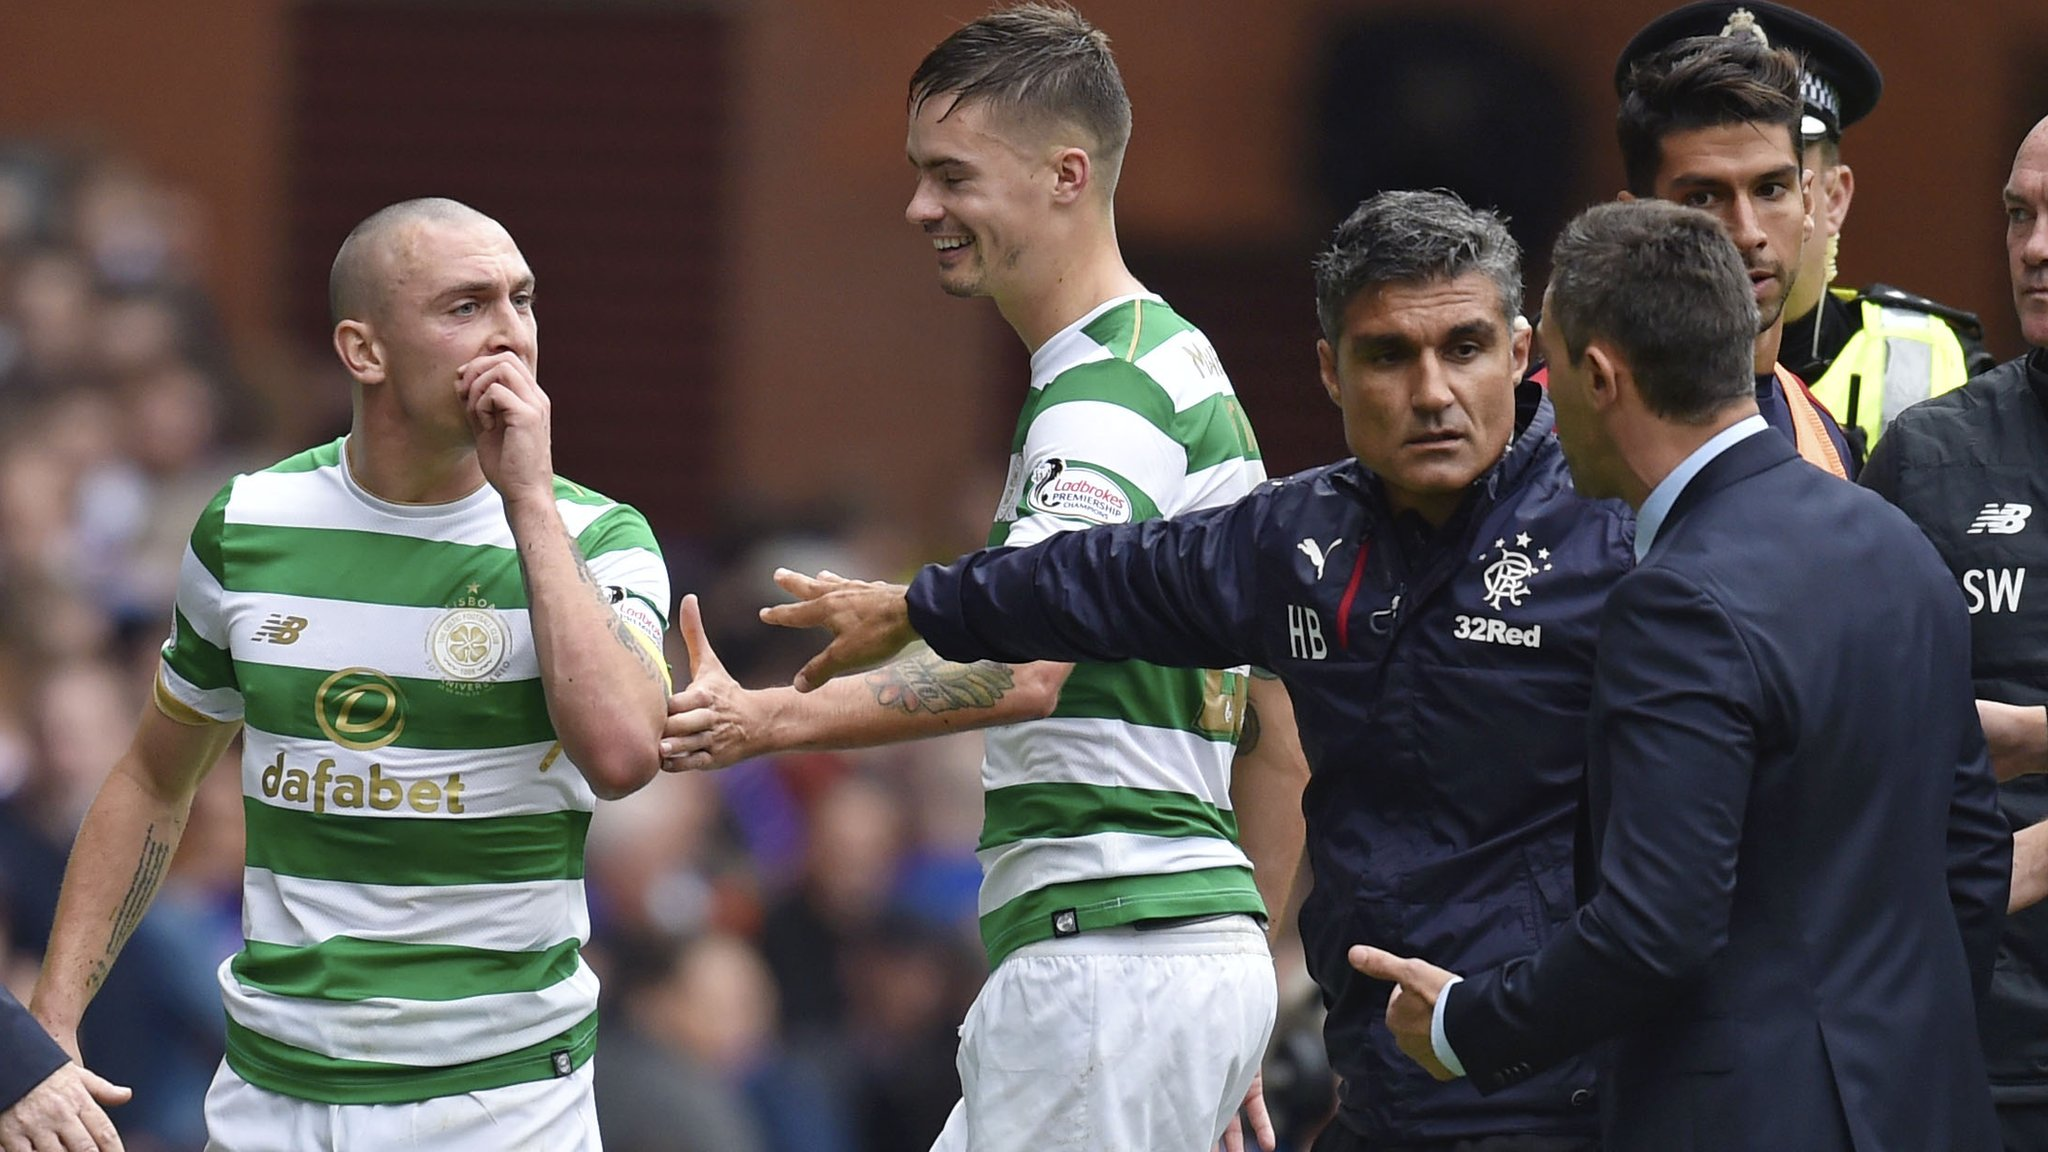 Rangers: Pedro Caixinha says Scott Brown elbowed Alfredo Morelos